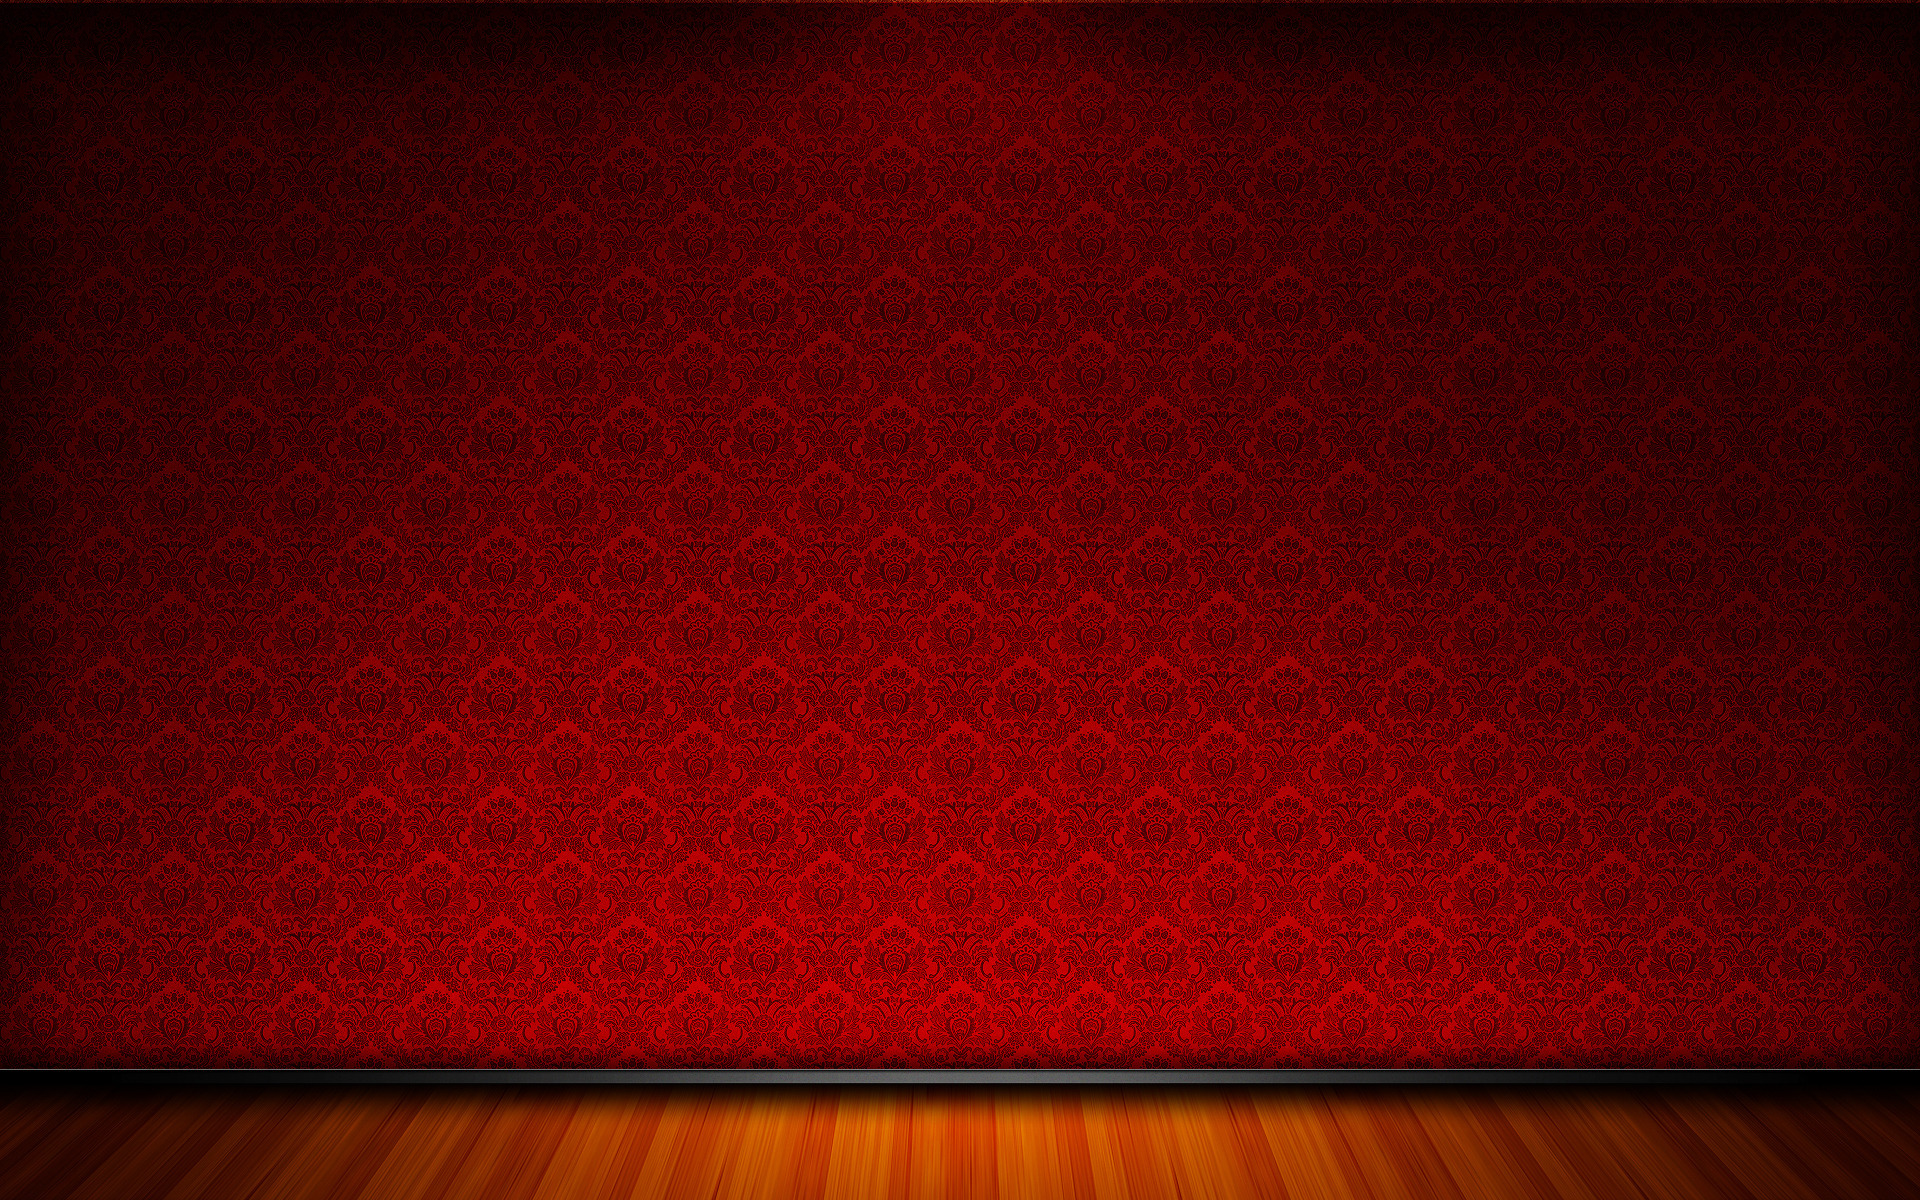 Red background wallpapers galaxy Black Background and some PPT 1920x1200